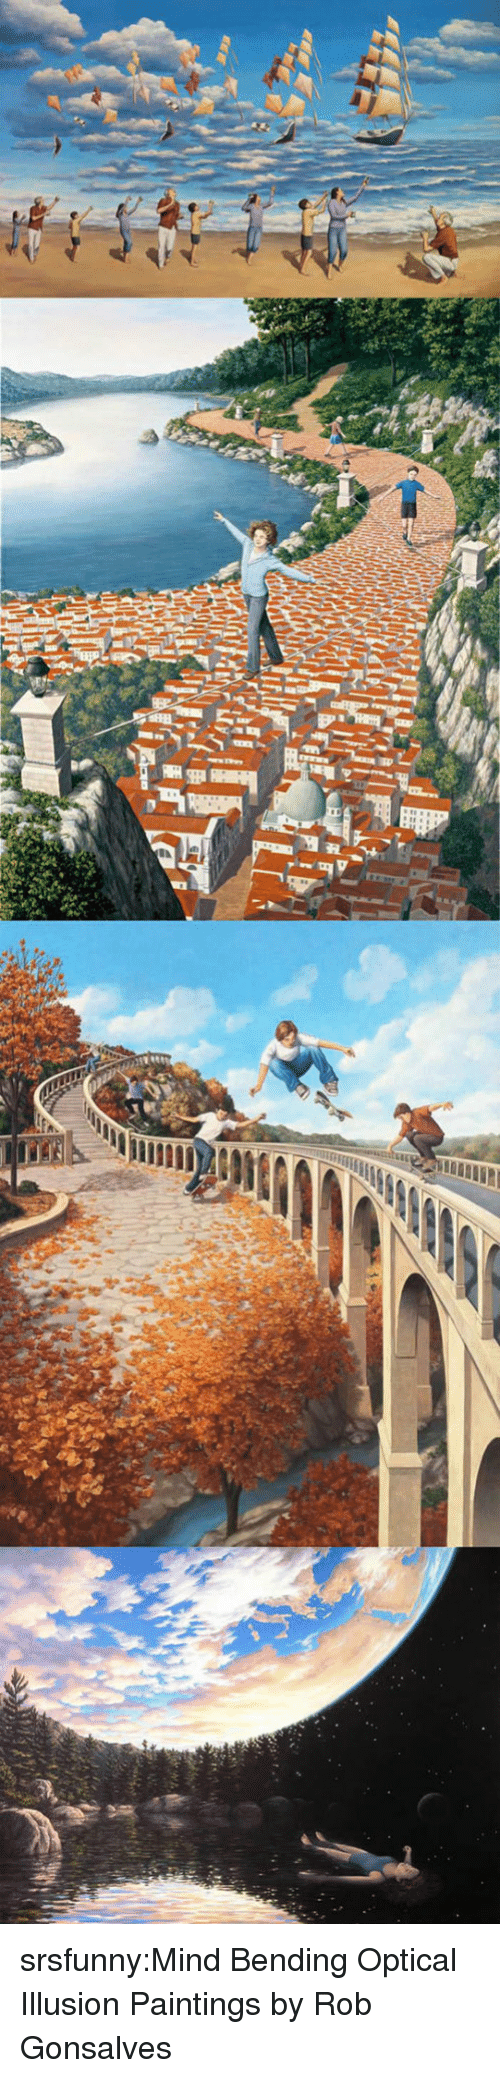 Optical Illusion: srsfunny:Mind Bending Optical Illusion Paintings by Rob Gonsalves